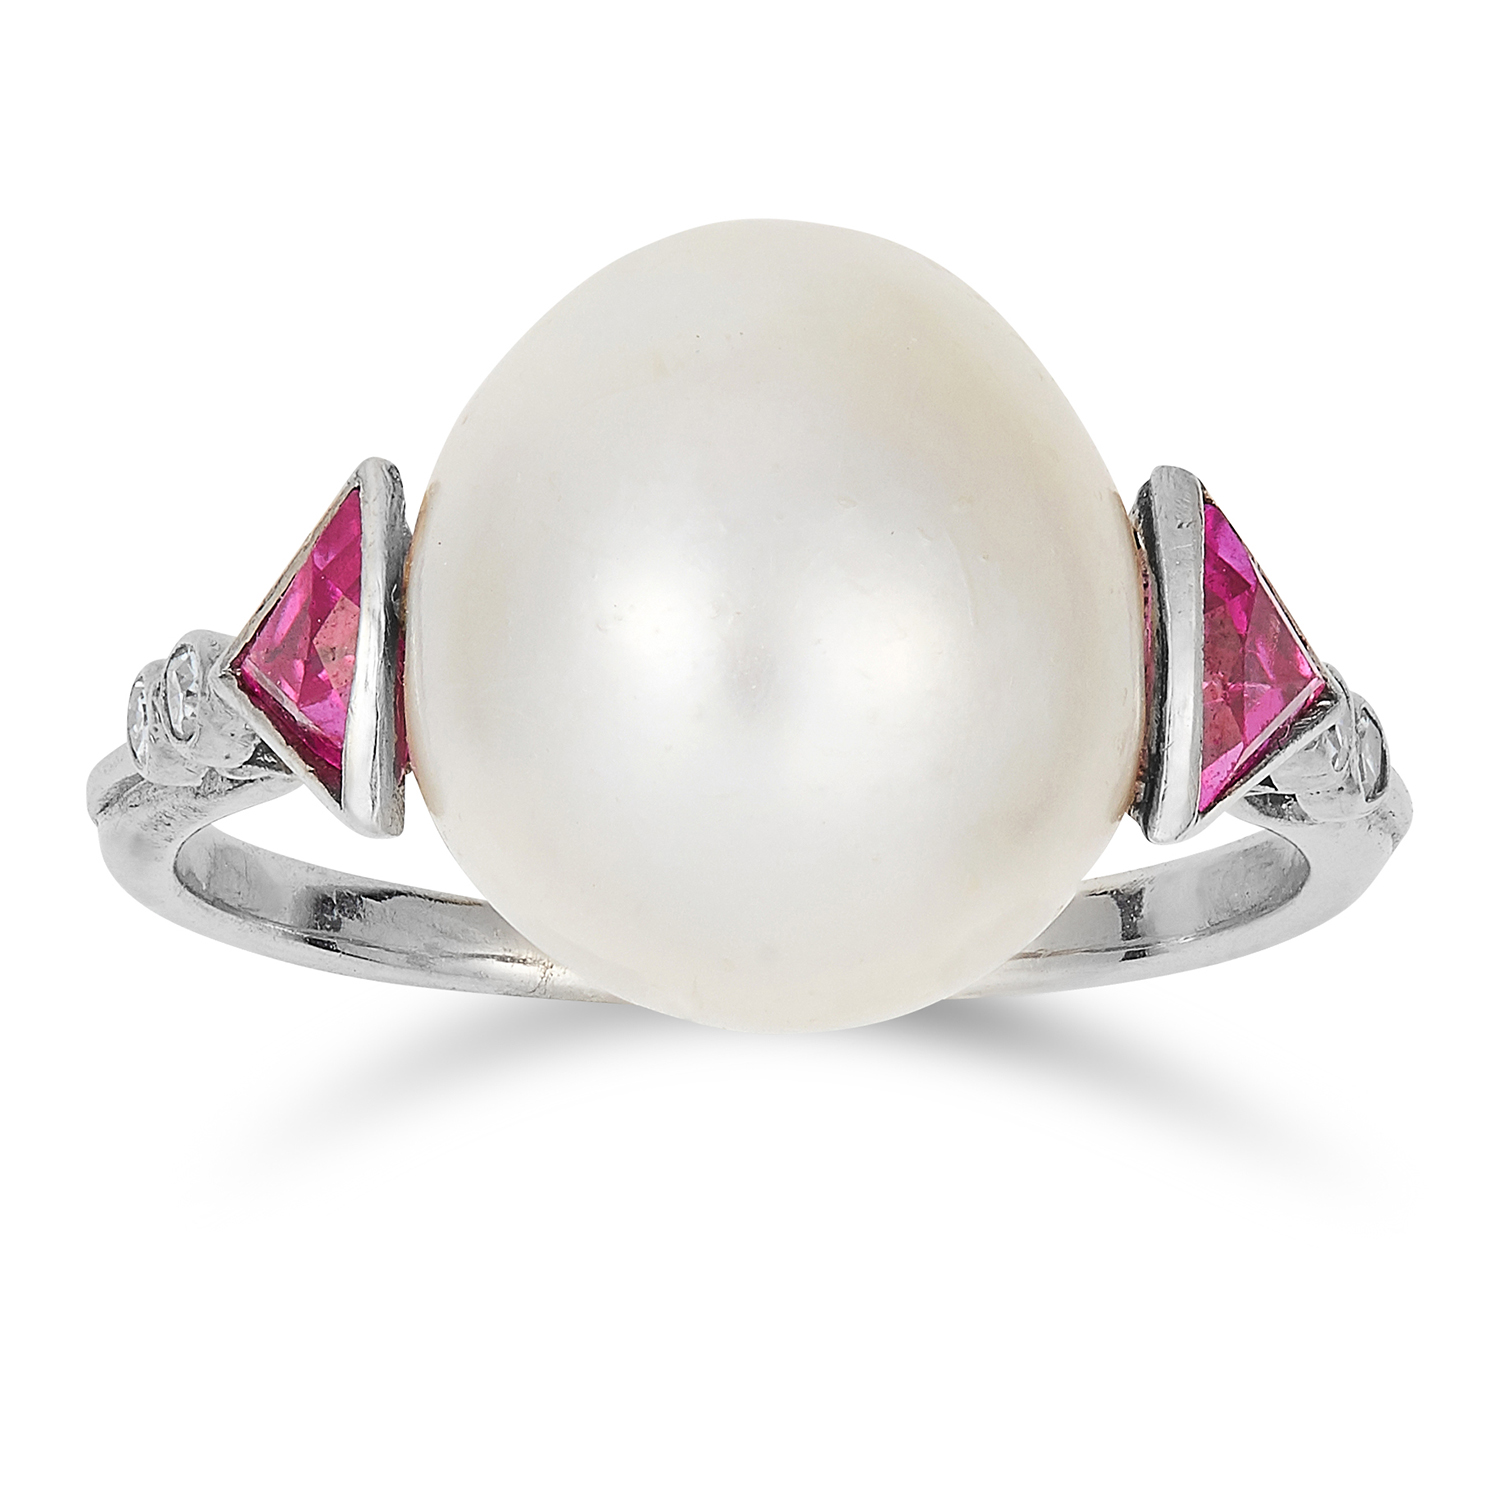 NATURAL SALTWATER PEARL, RUBY AND DIAMOND RING in 18ct white gold or platinum, comprising of a